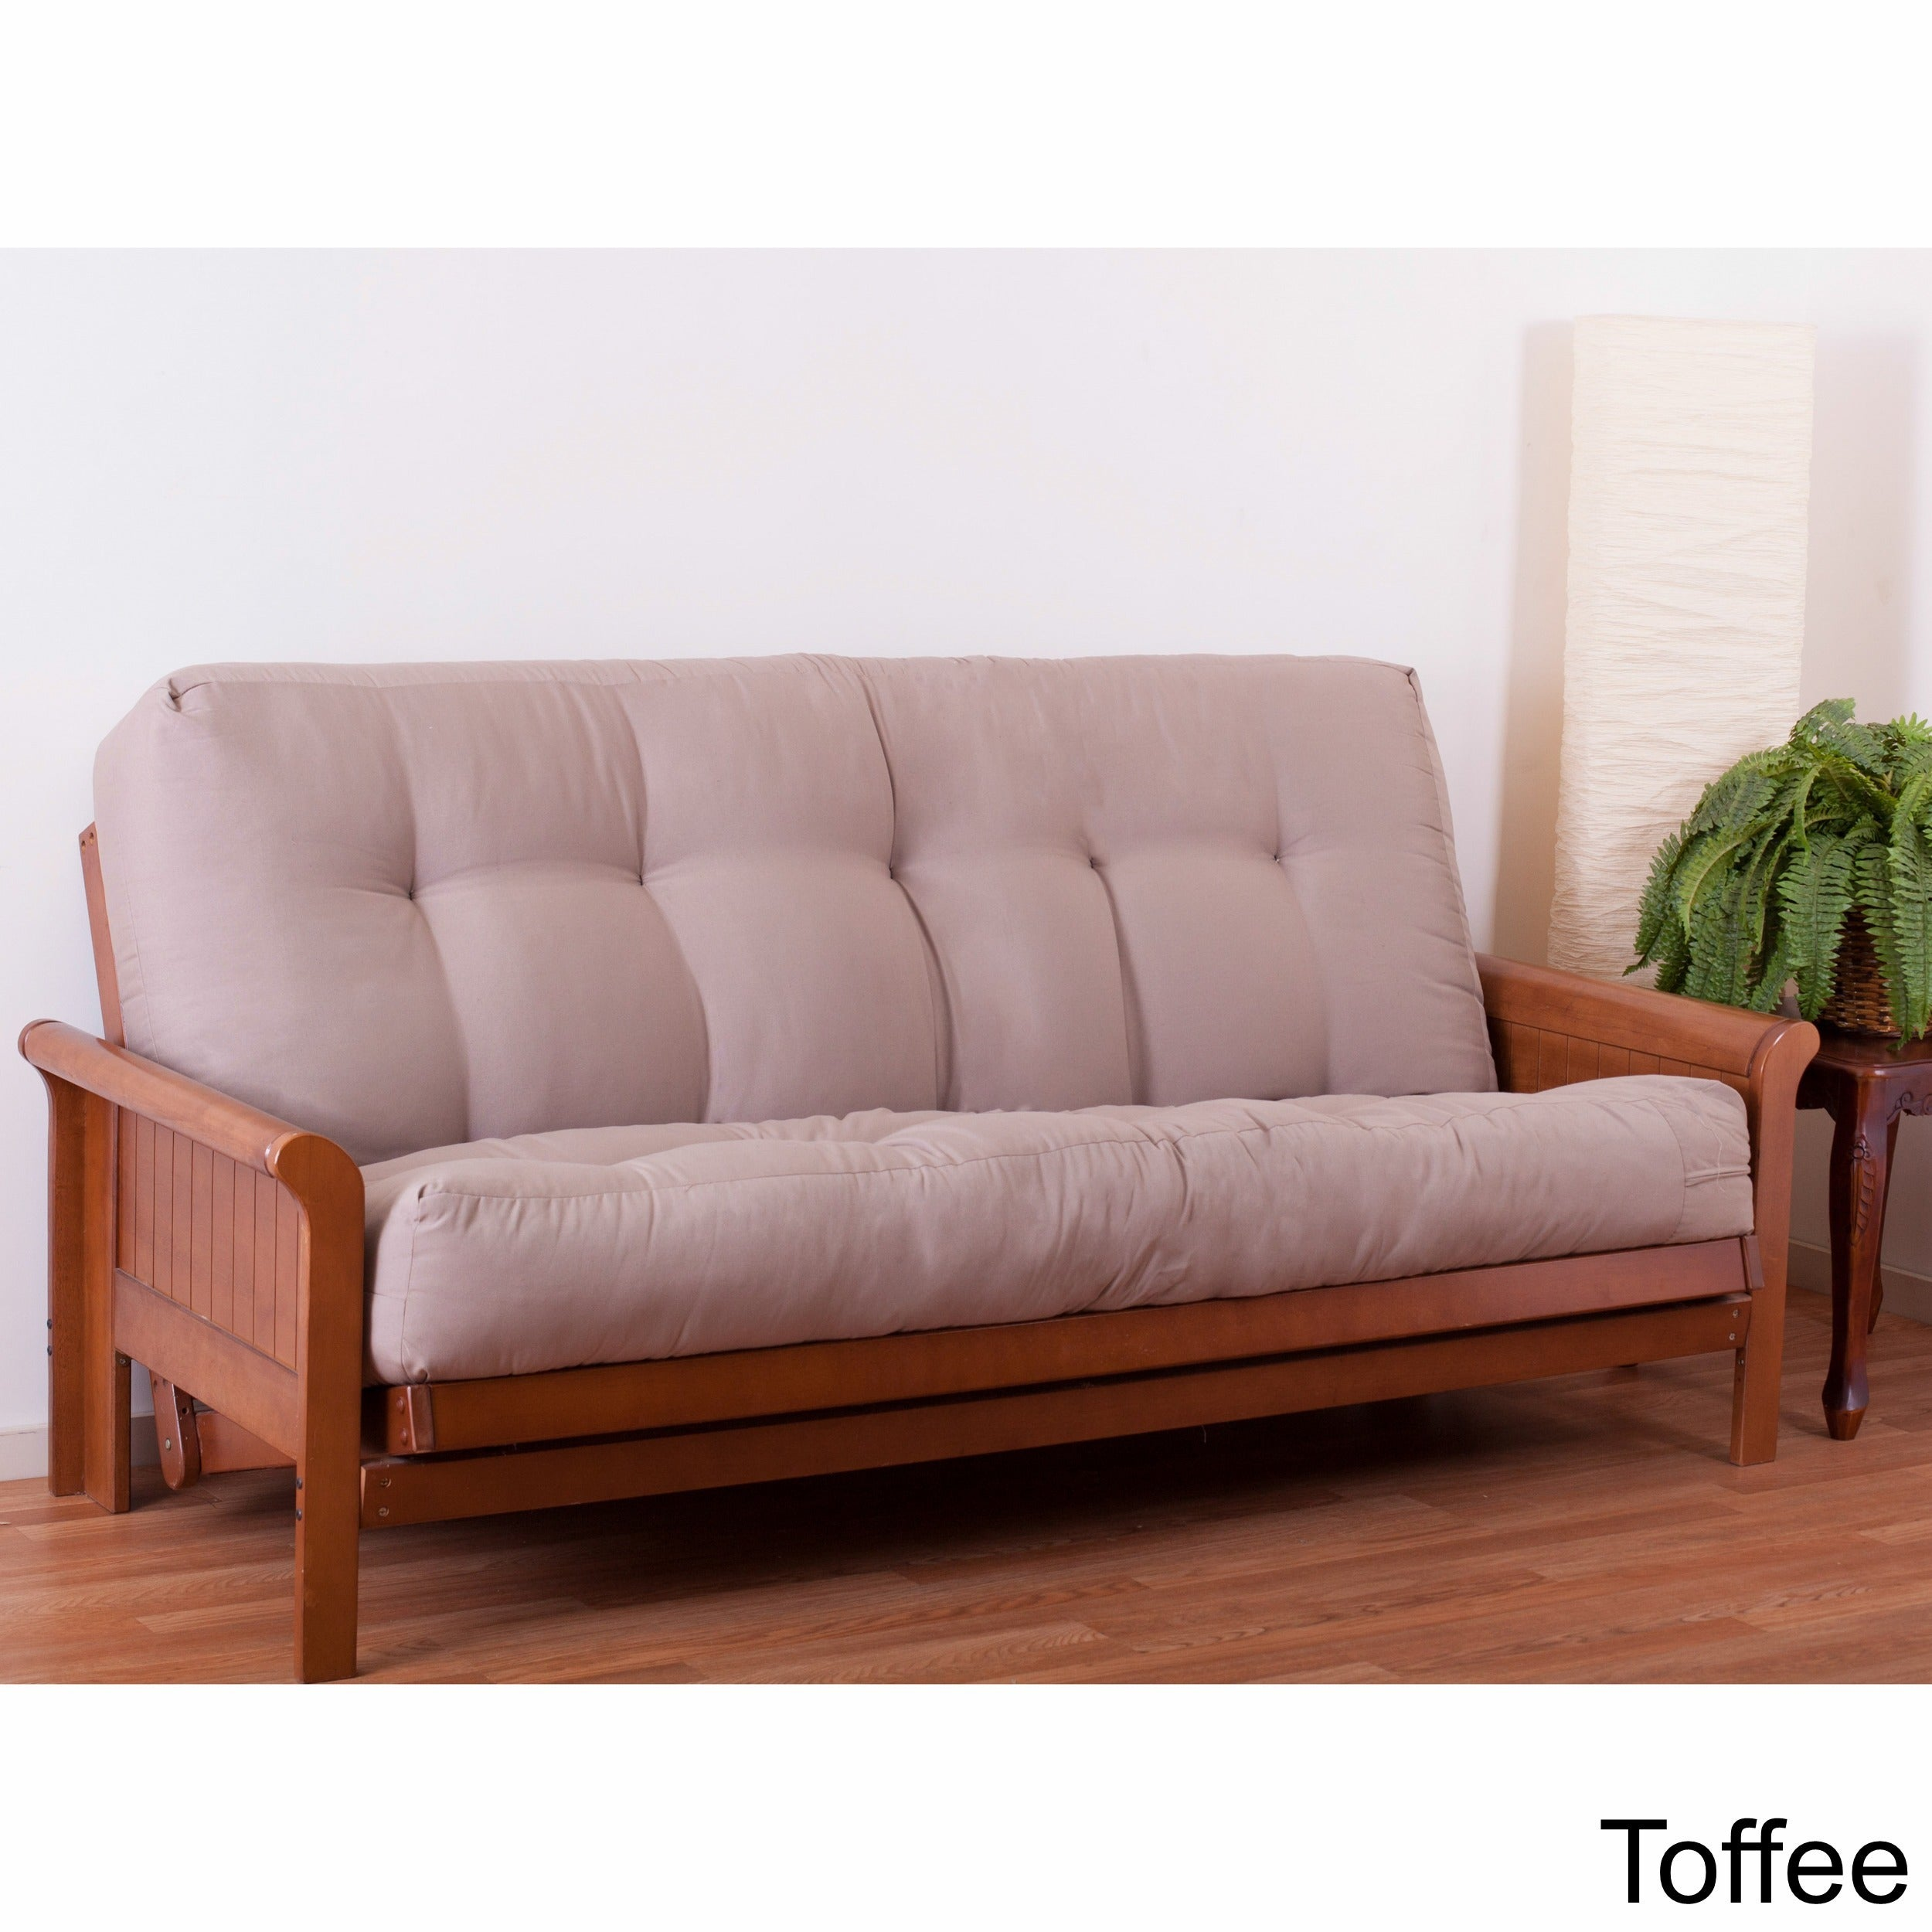 tan cushions home depot the canada dhp p futon black ethan en mattress white inch sofabed